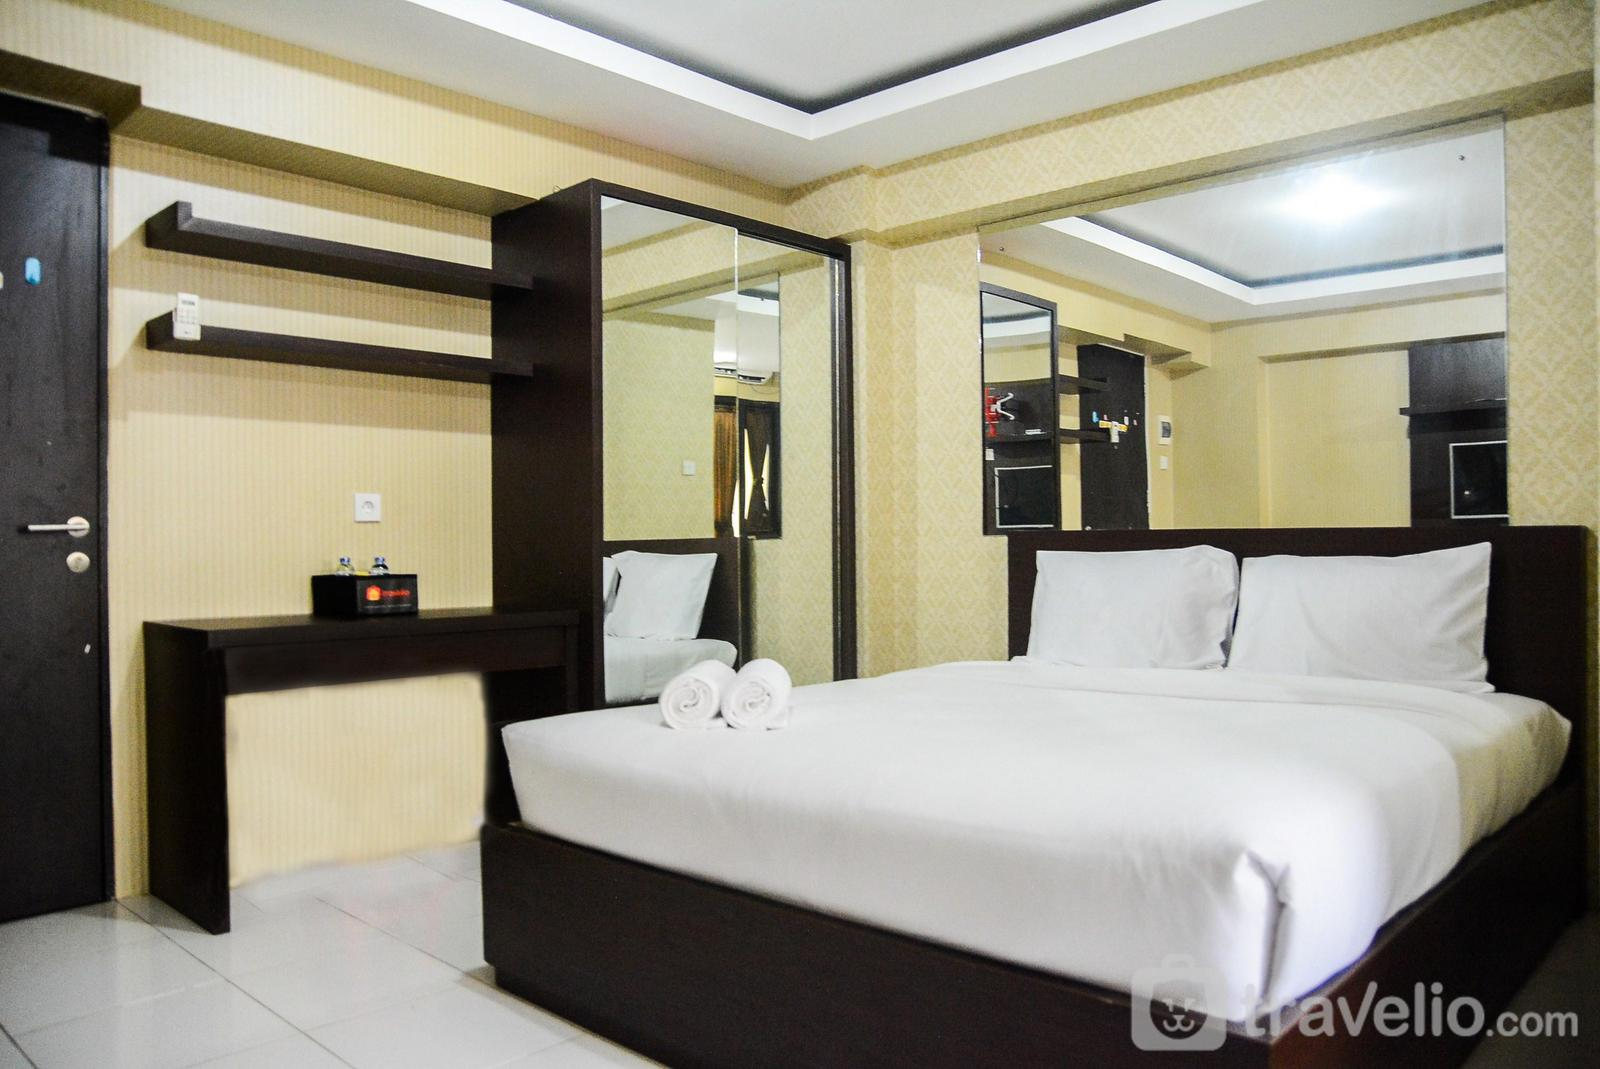 Kebagusan City Apartemen Pasar Minggu - Warm and Homey Studio Kebagusan City Apartment By Travelio